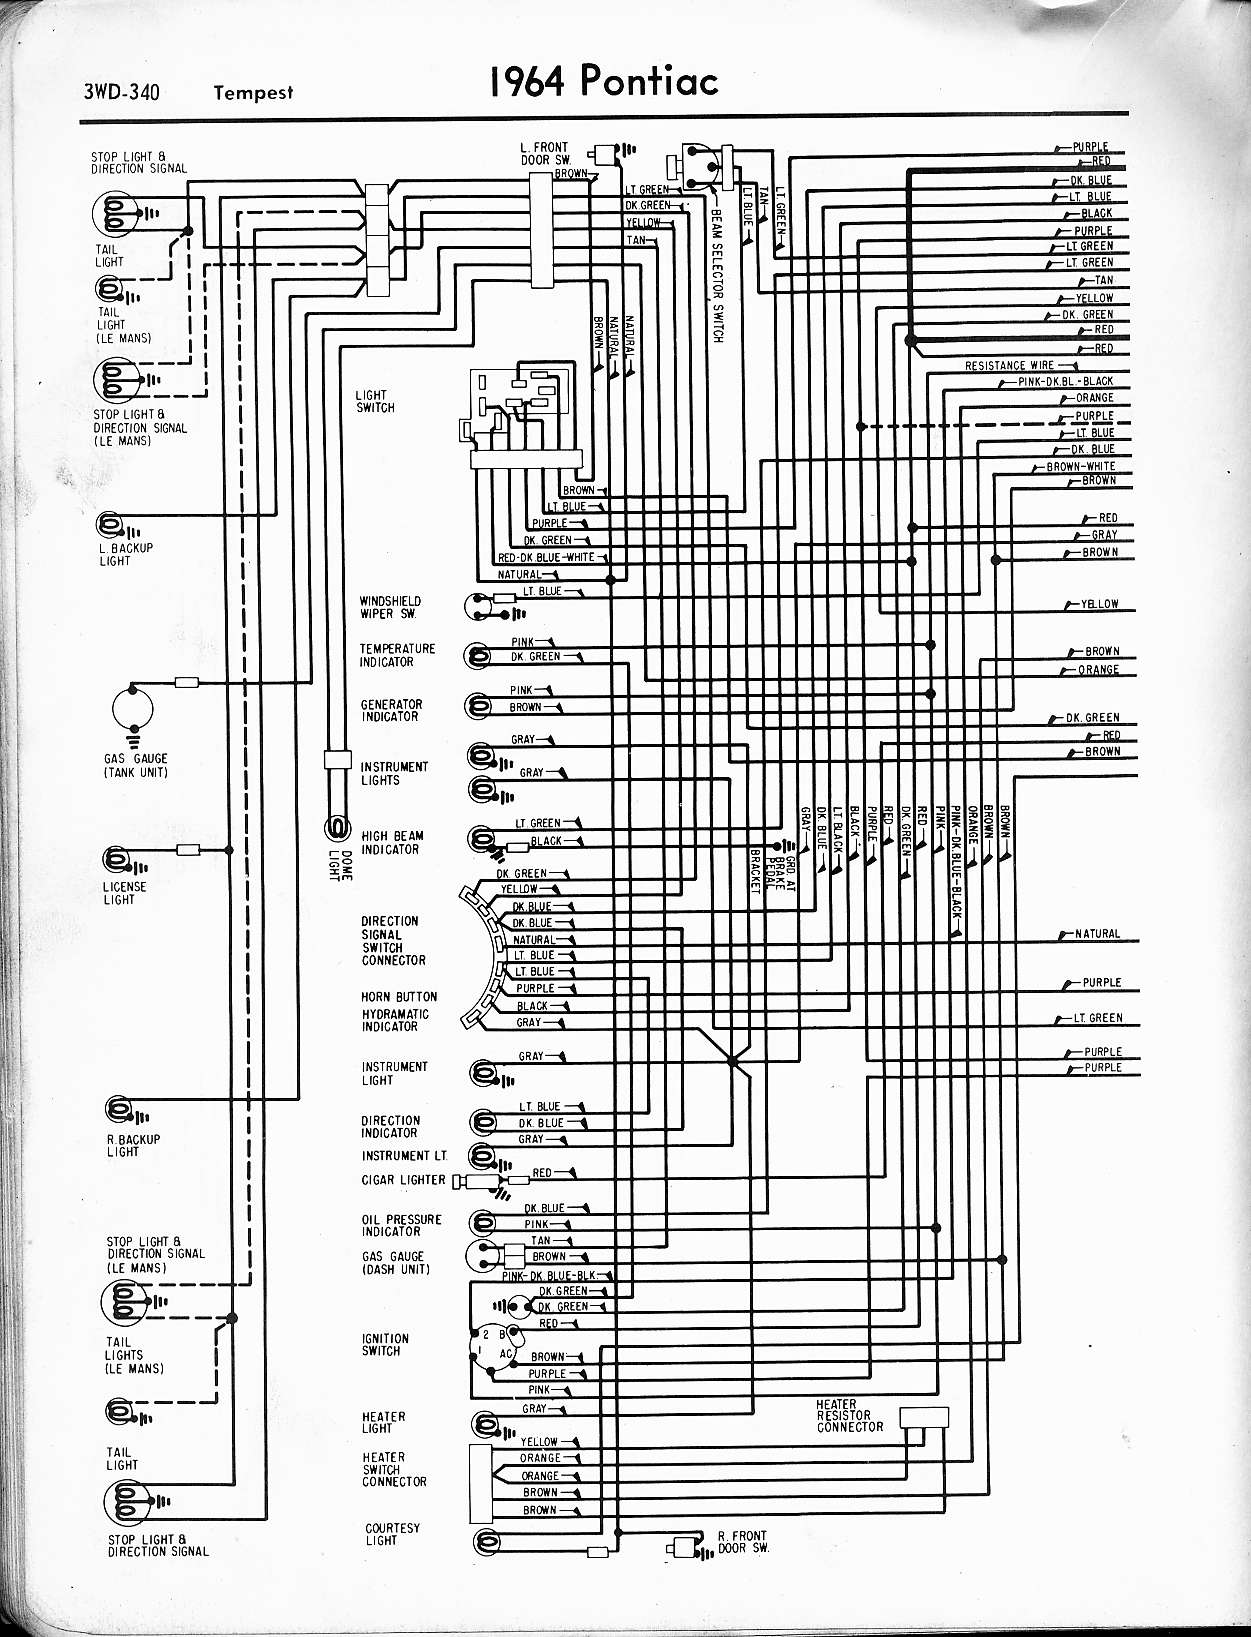 1964 Pontiac Tempest Wiring Diagram - Electrical Drawing Wiring ...